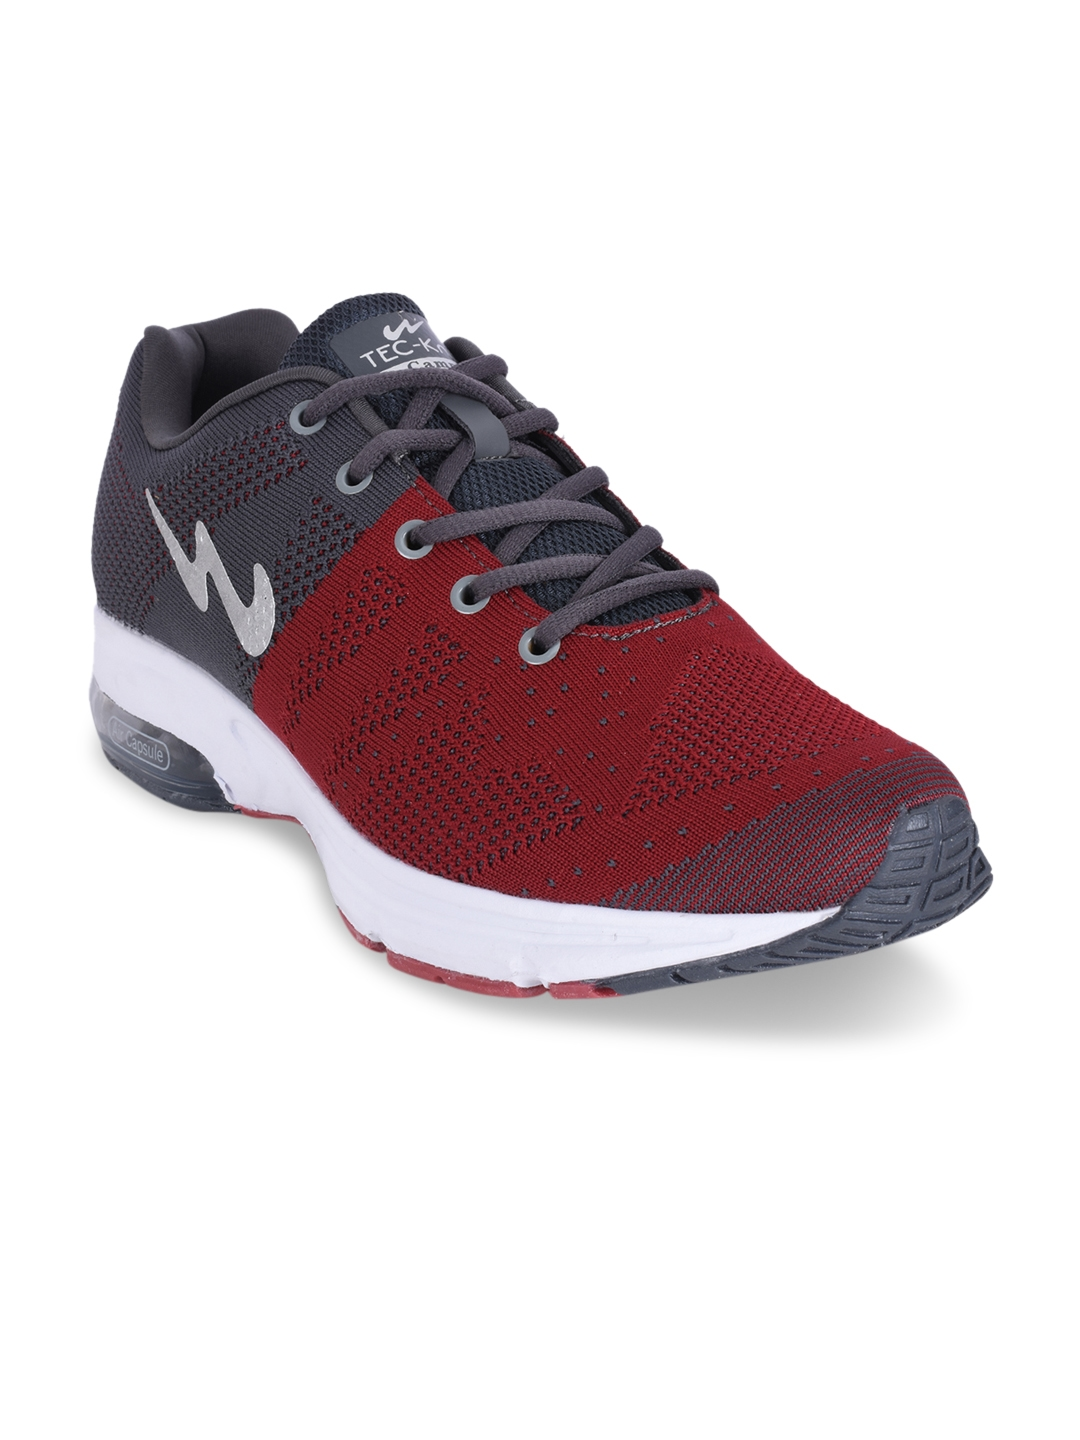 6611594cddfc70 Buy Campus Men Futura Grey   Rust Red Running Shoes - Sports Shoes ...